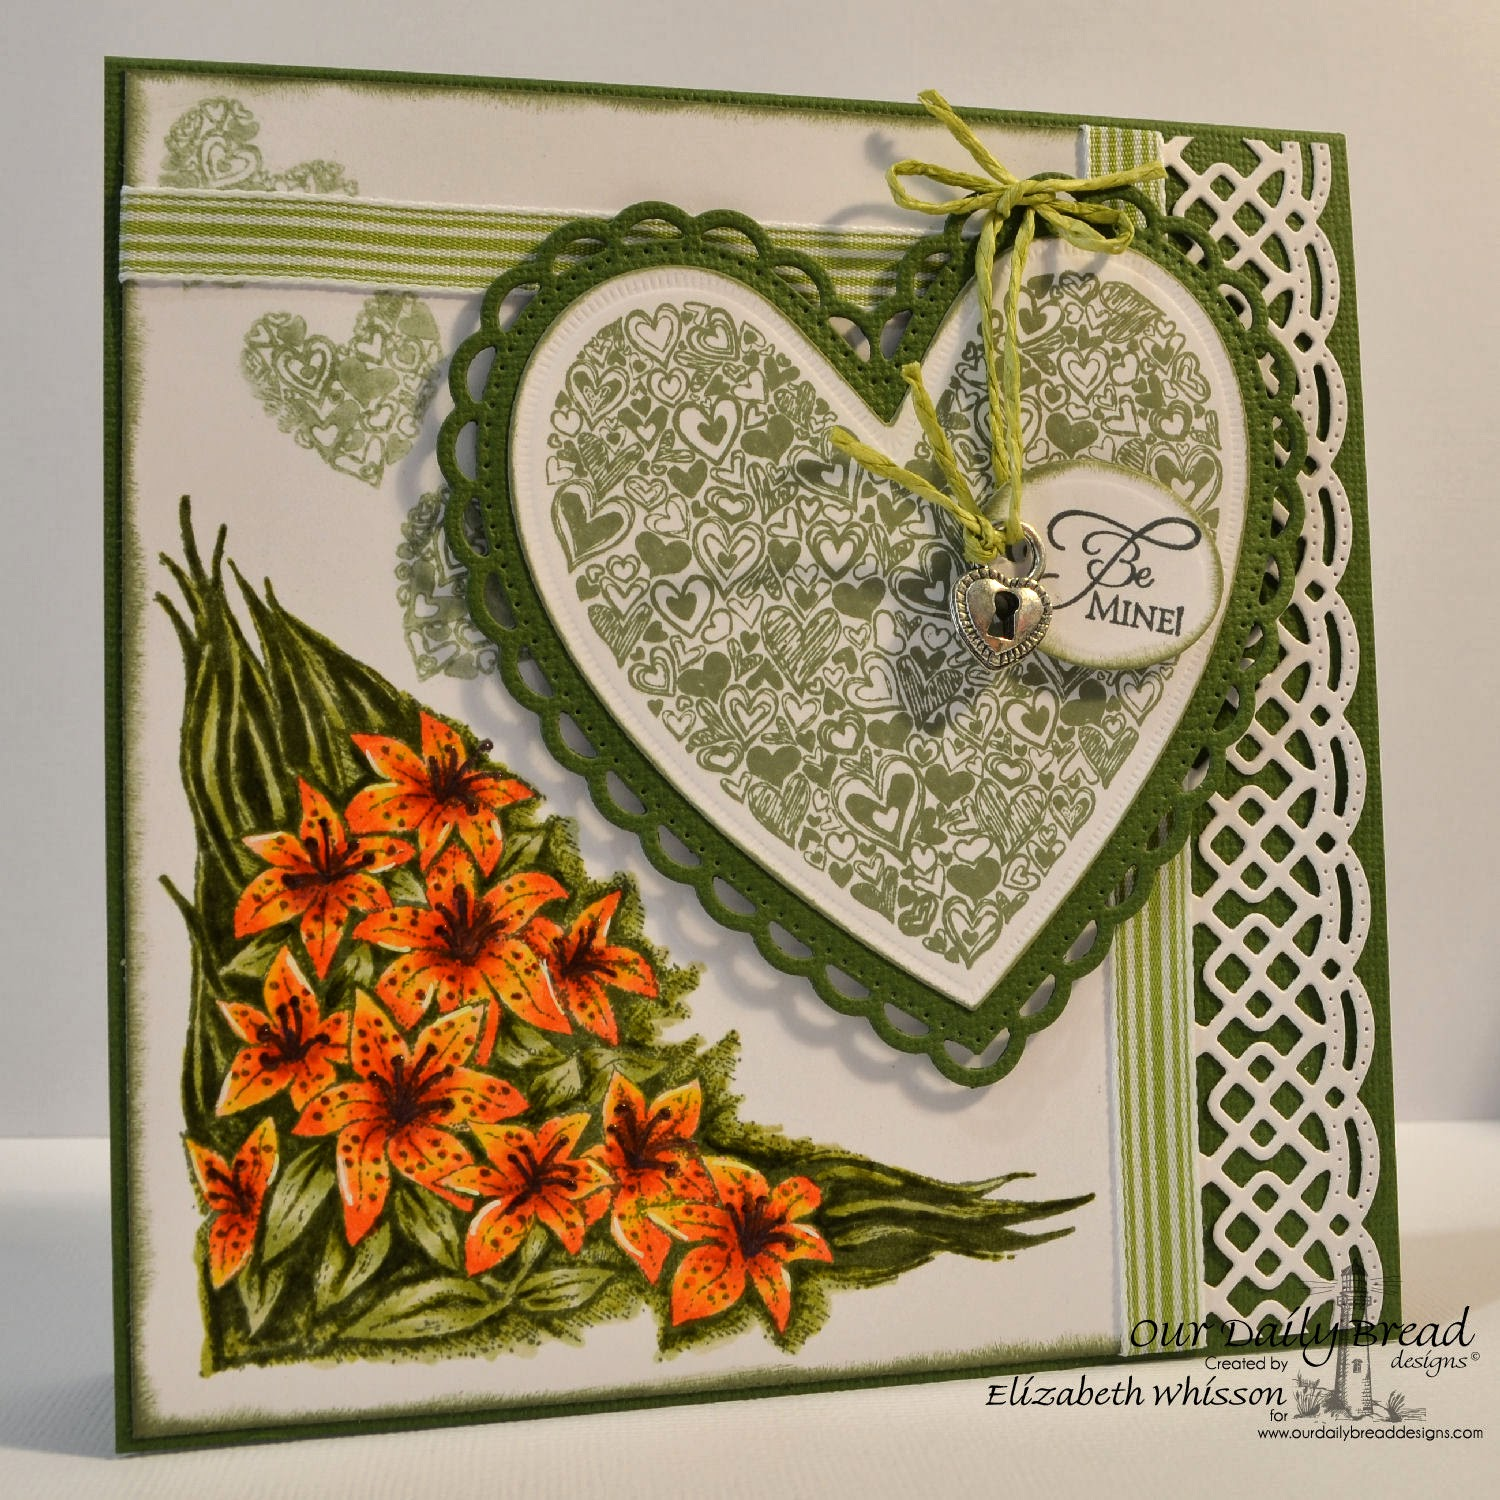 Our Daily Bread Designs, Tiger Lily, Heart of Joy, Be Mine, ODBD Ornate Hearts Dies, ODBD Beautiful Borders Dies, Elizabeth Whisson